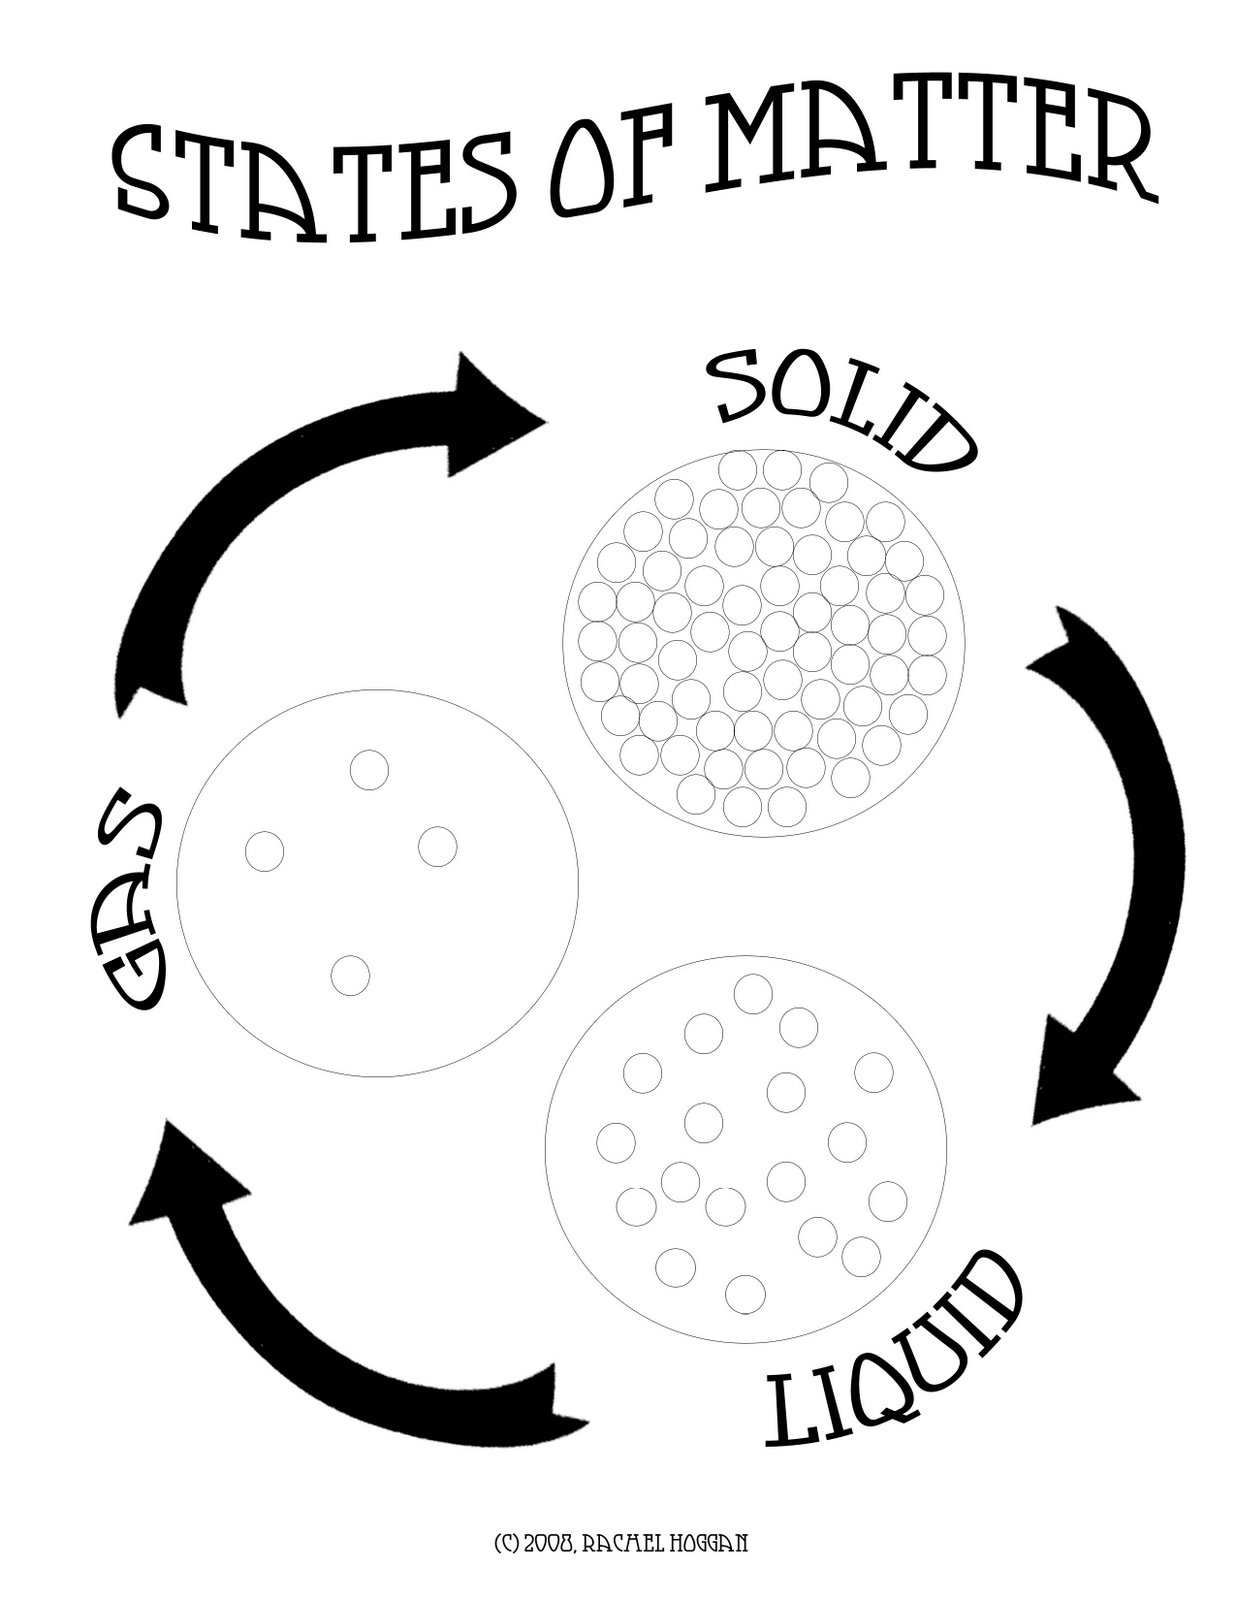 States Of Matter Solids Liquids Gas Printable Sketch Coloring Page